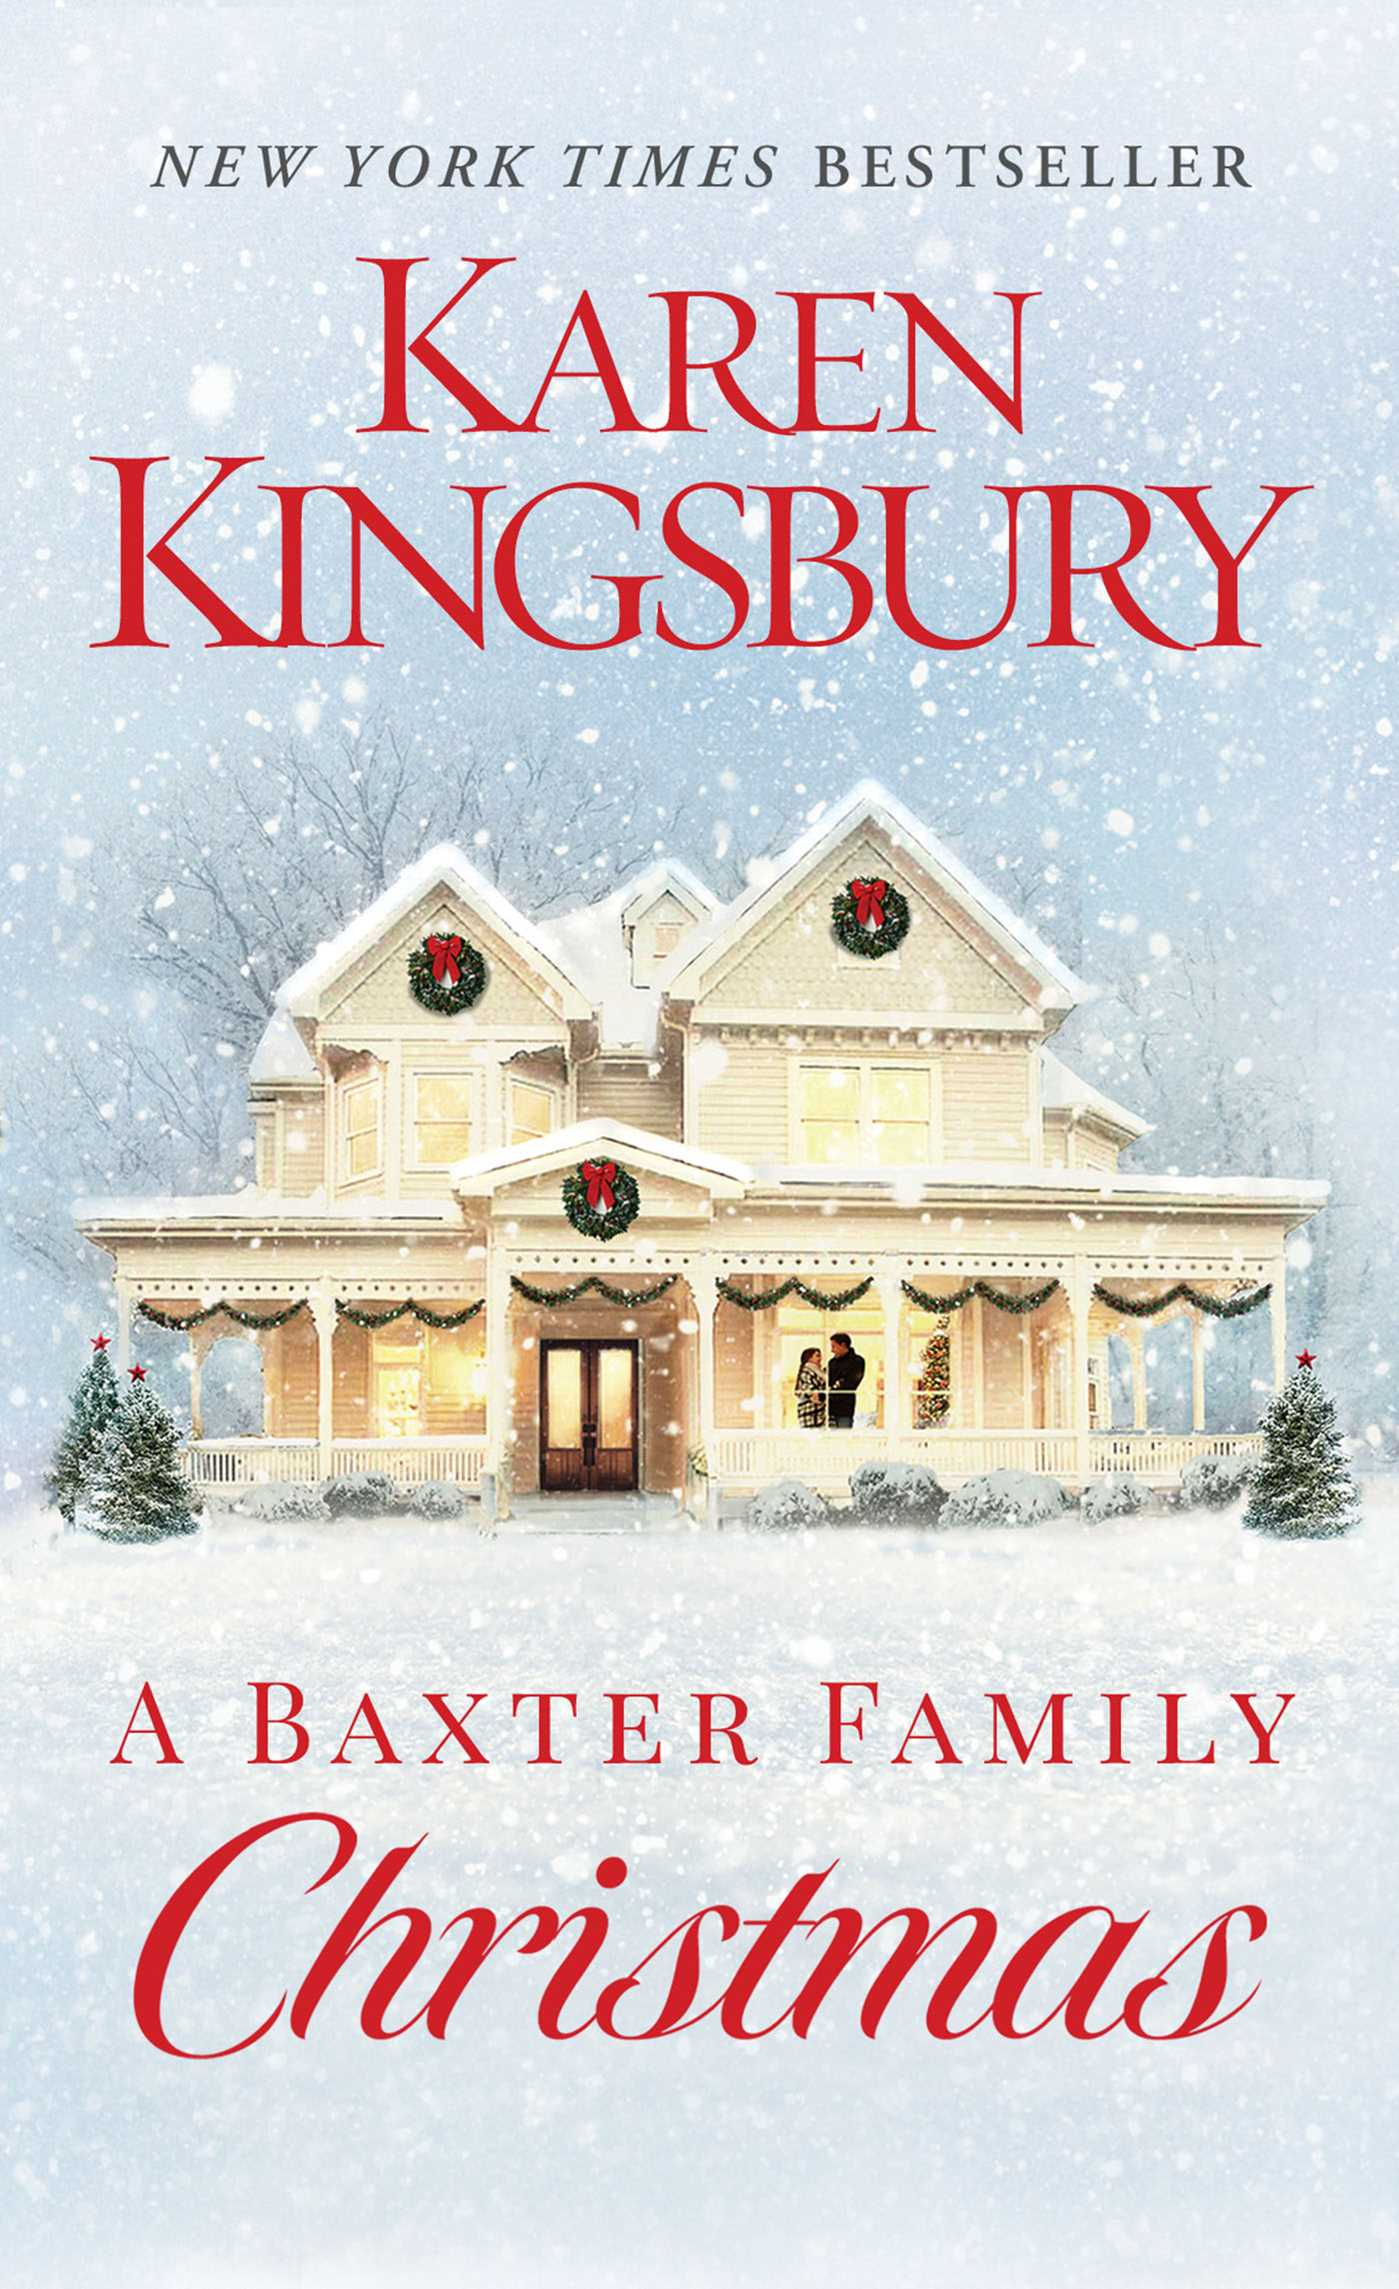 A Baxter family Christmas : a novel